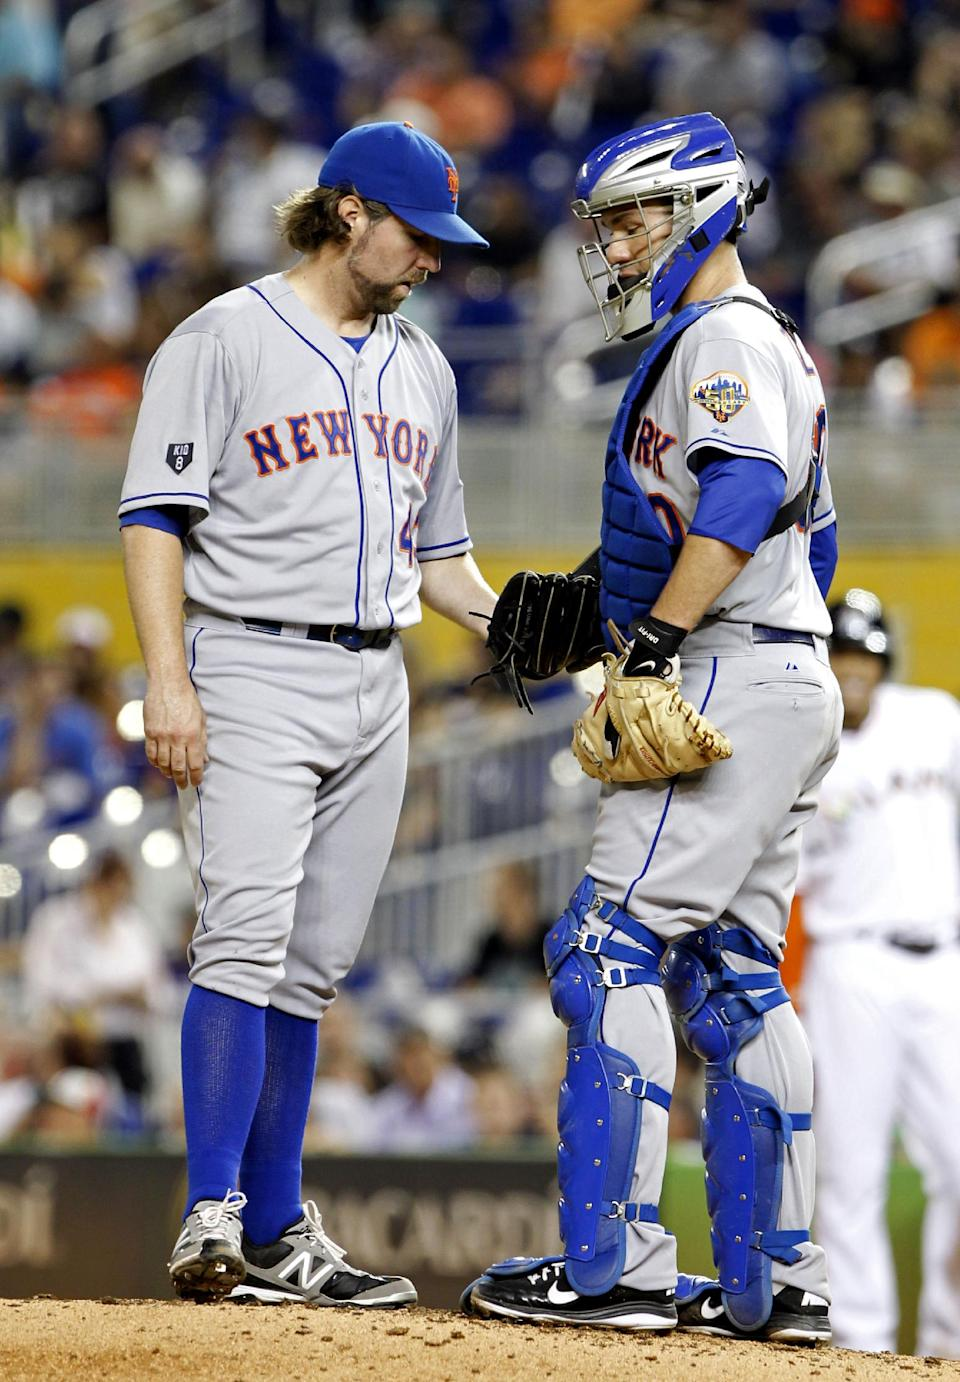 New York Mets' R.A. Dickey, left, talks to catcher Josh Thole after Miami Marlins' Giancarlo Stanton hit a single in the sixth inning of a baseball game in Miami, Tuesday, Oct. 2, 2012. (AP Photo/Alan Diaz)